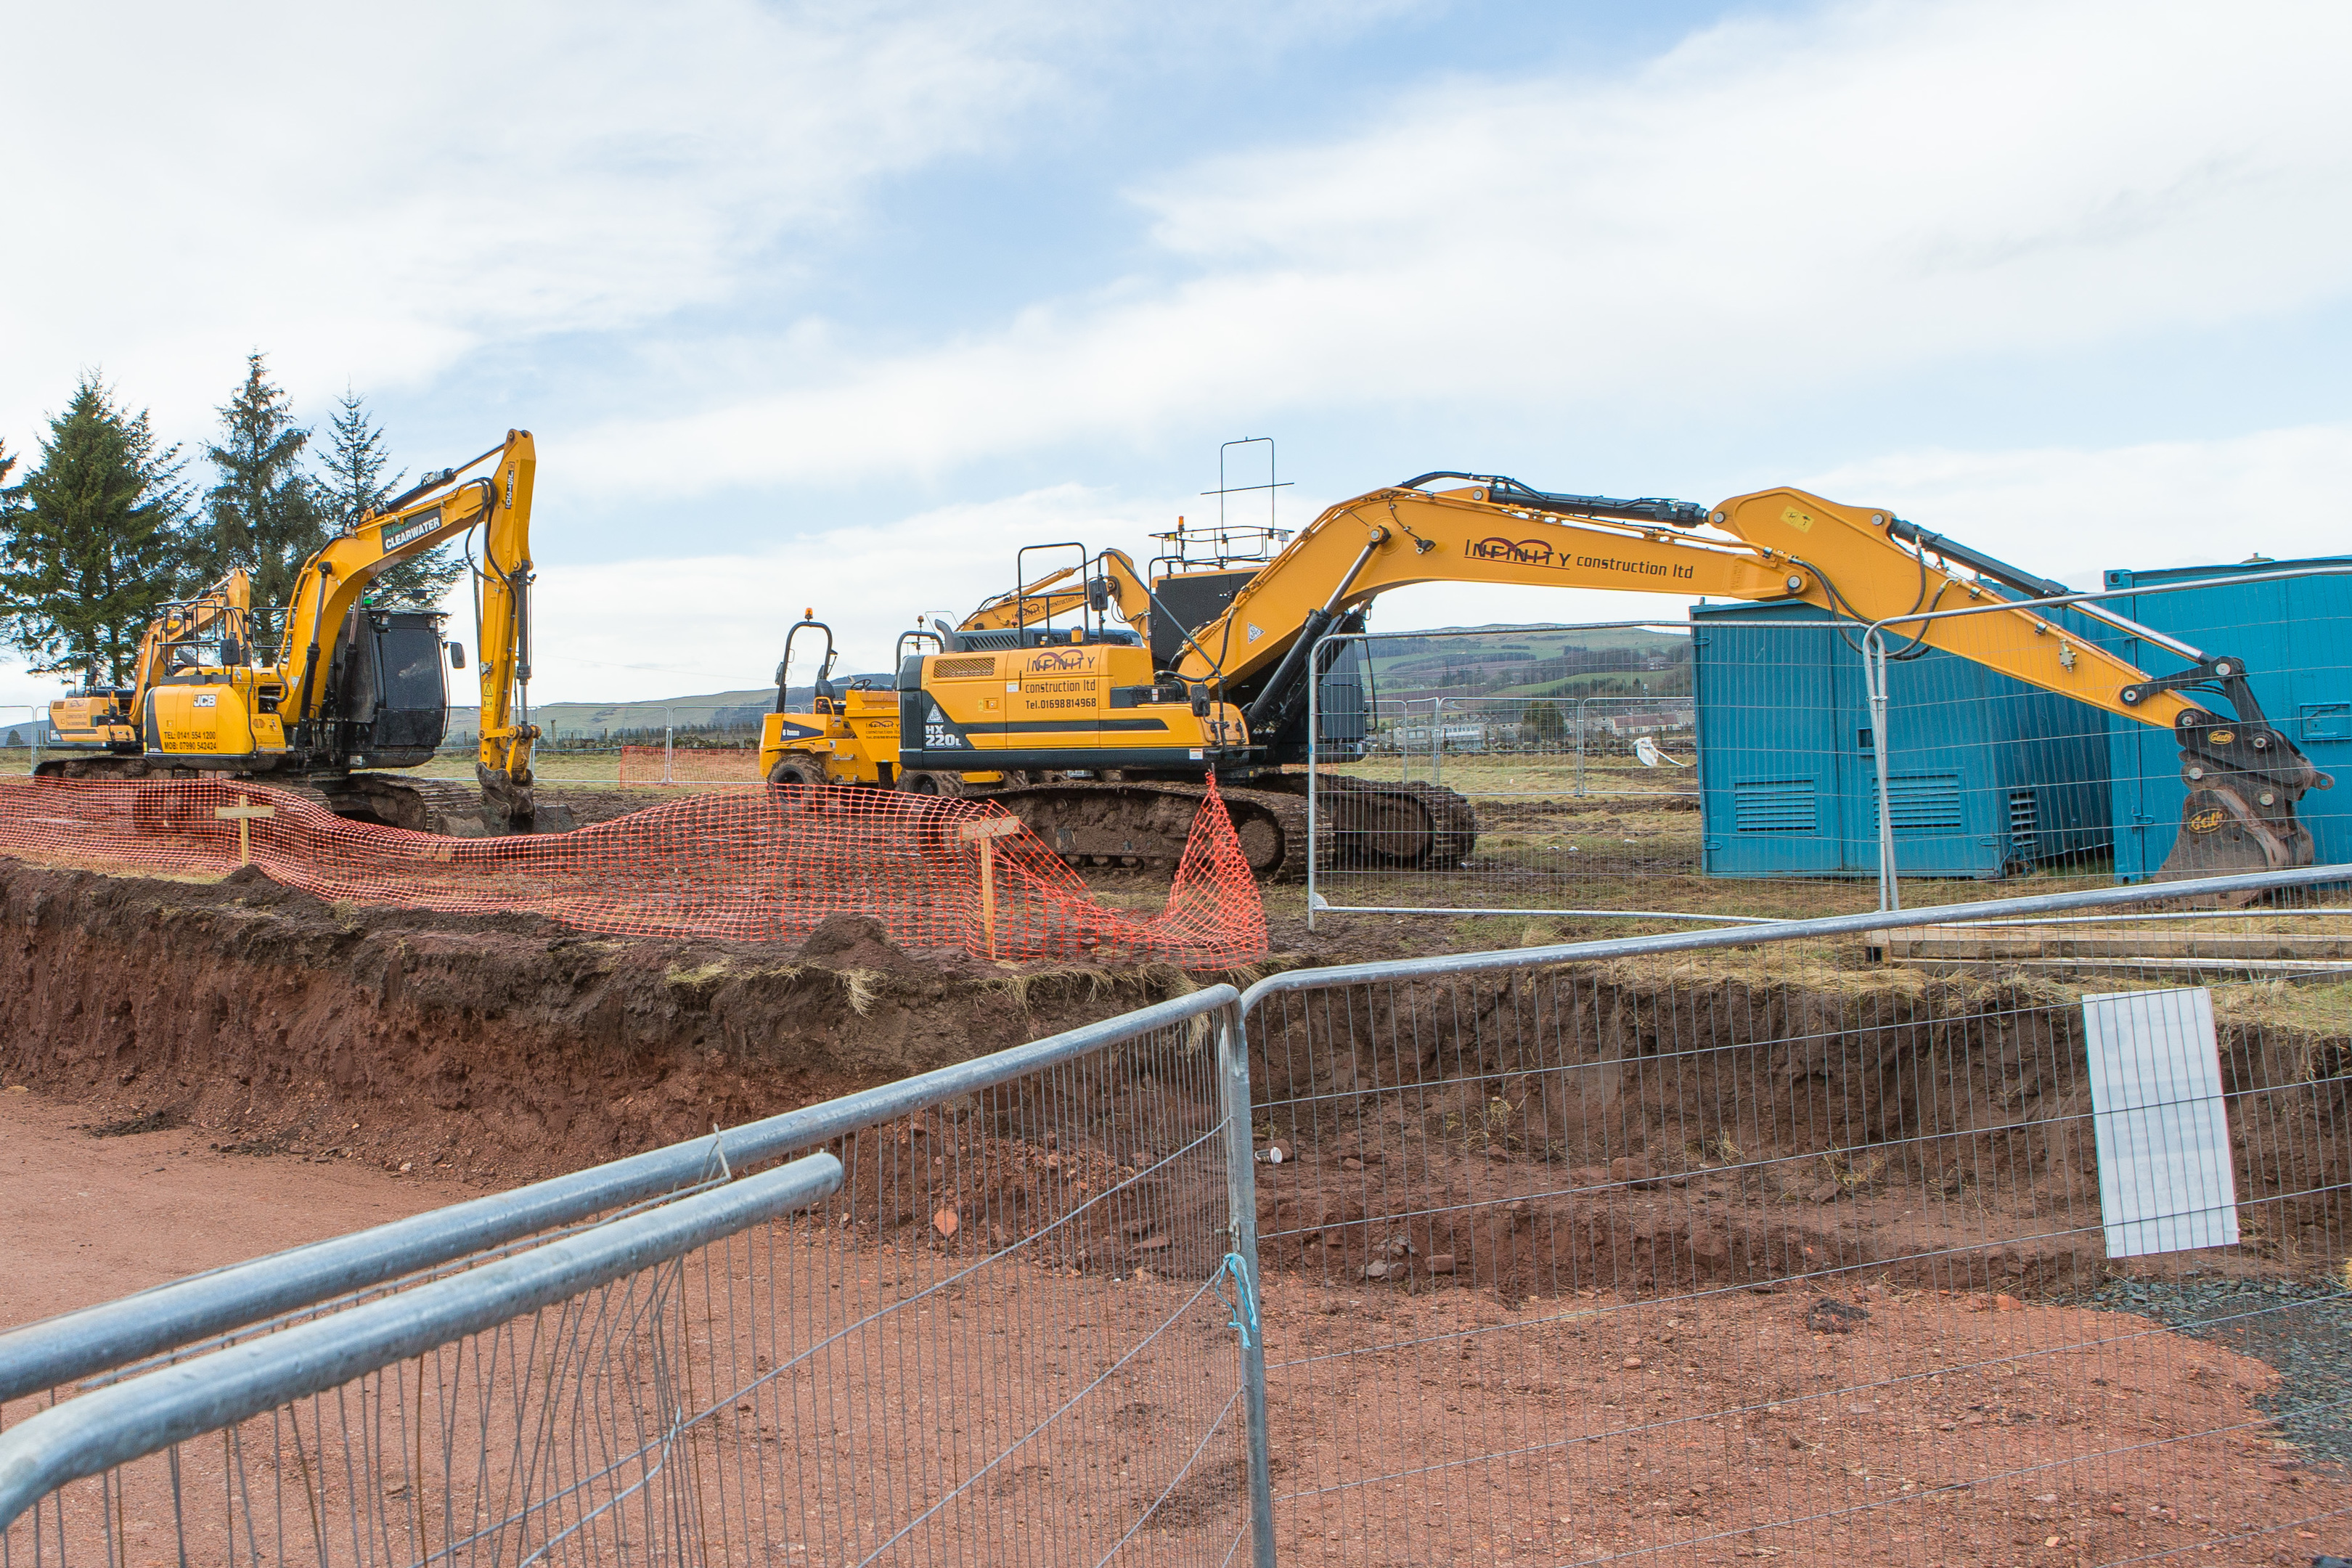 Work at Lathro Farm on edge of Kinross